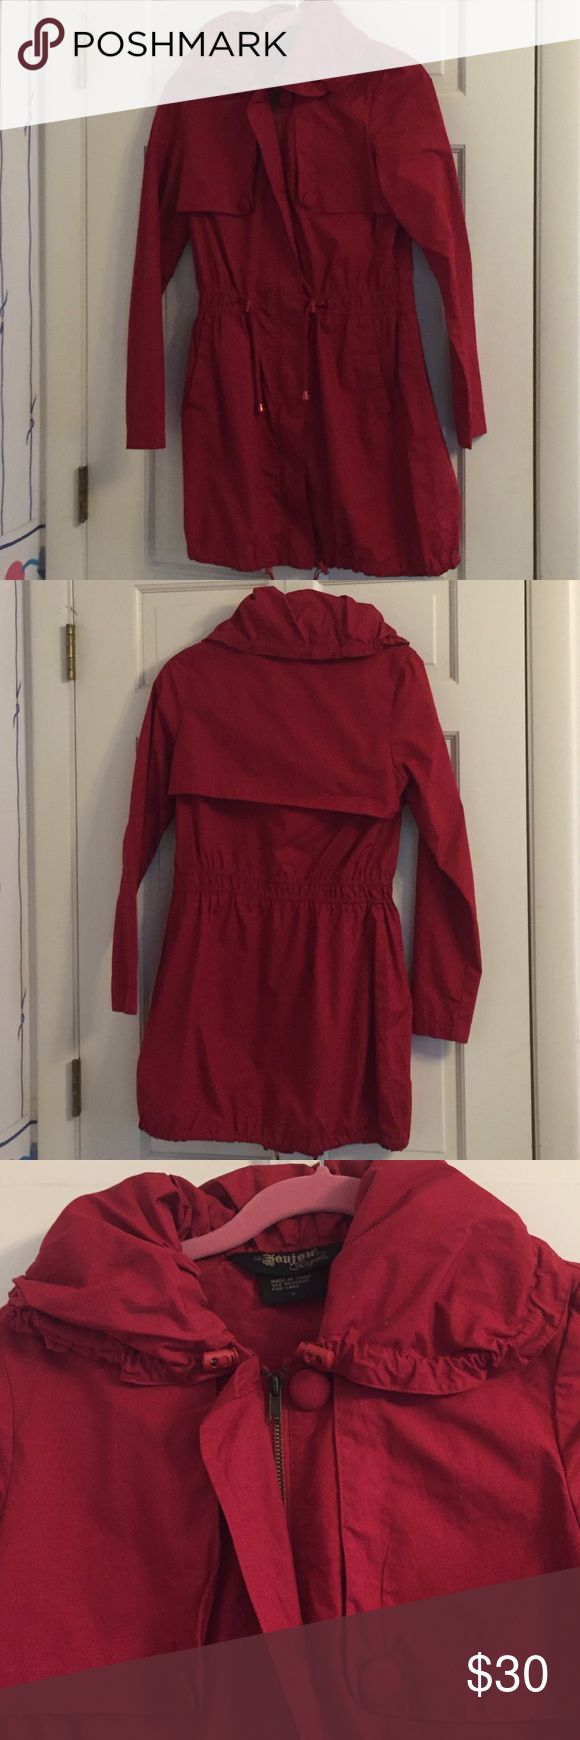 Red Lightweight Trench Coat This coat is perfect for spring or early fall. It's great to wear over pants or dresses. The drawstring waist adds a nice cinch to show off your curves ❤️ Jackets & Coats Trench Coats